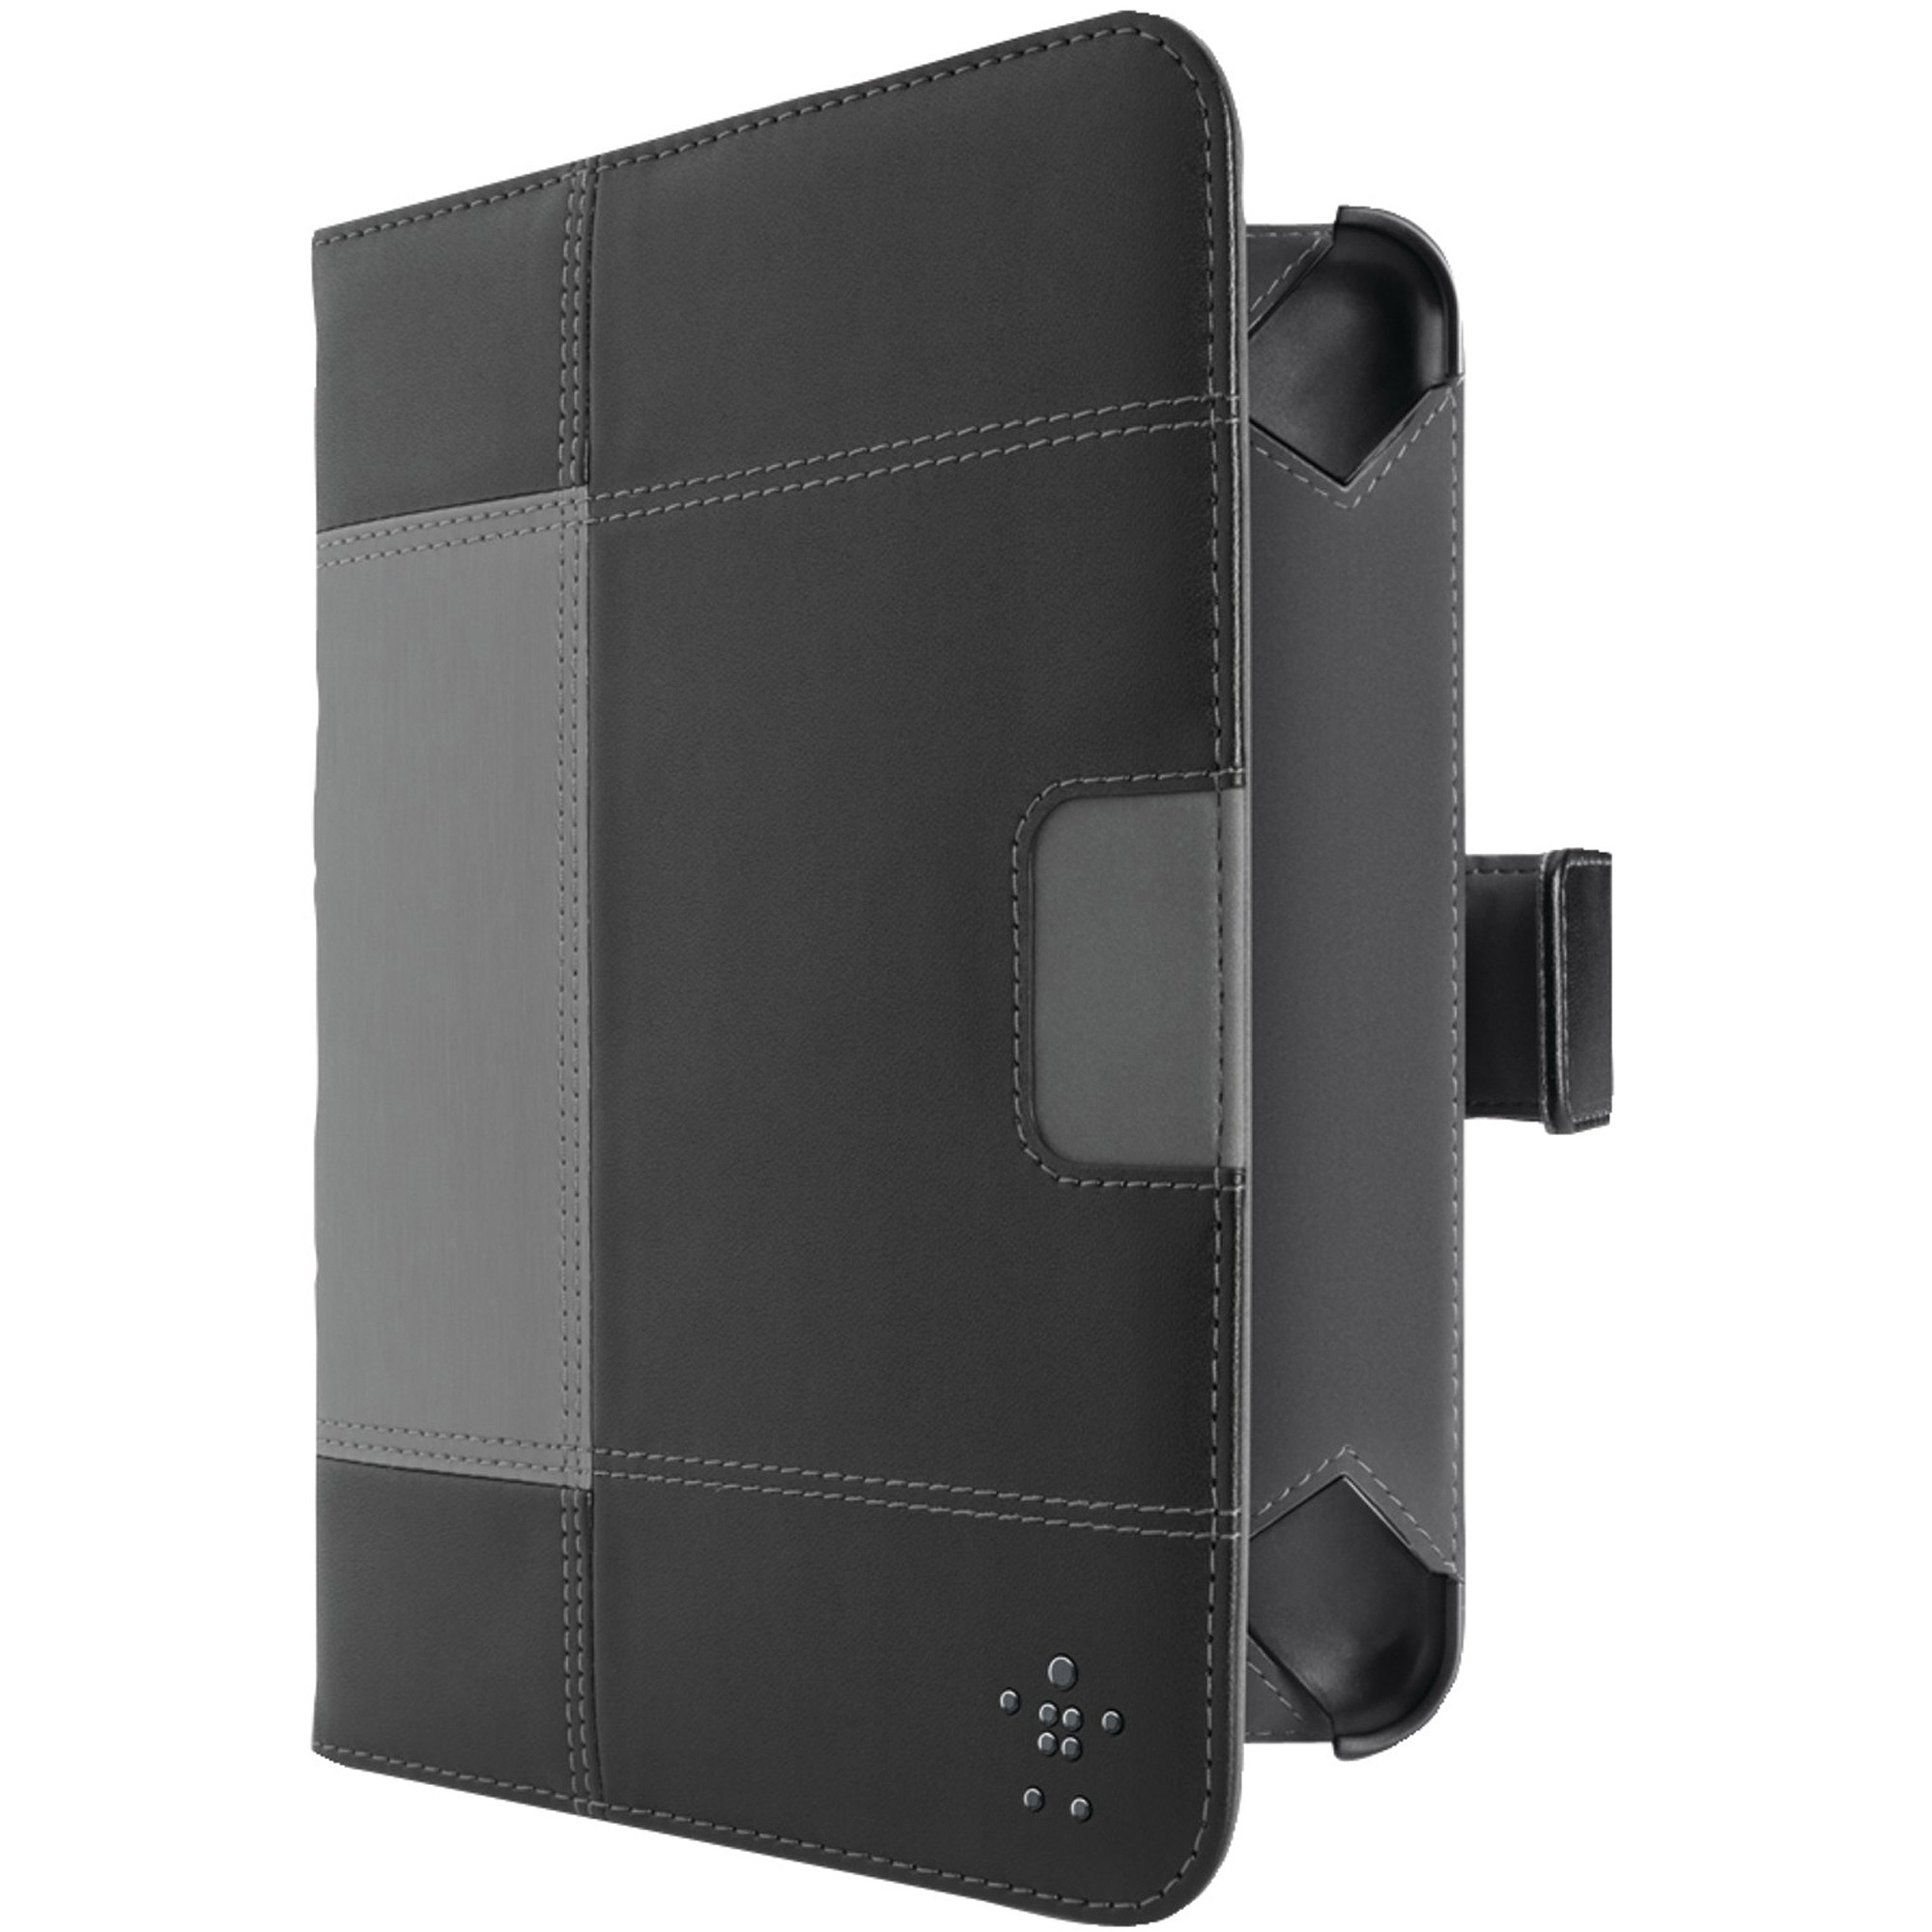 Kindle Fire HD 7 In. Glam Tab Cover with Stand - Black